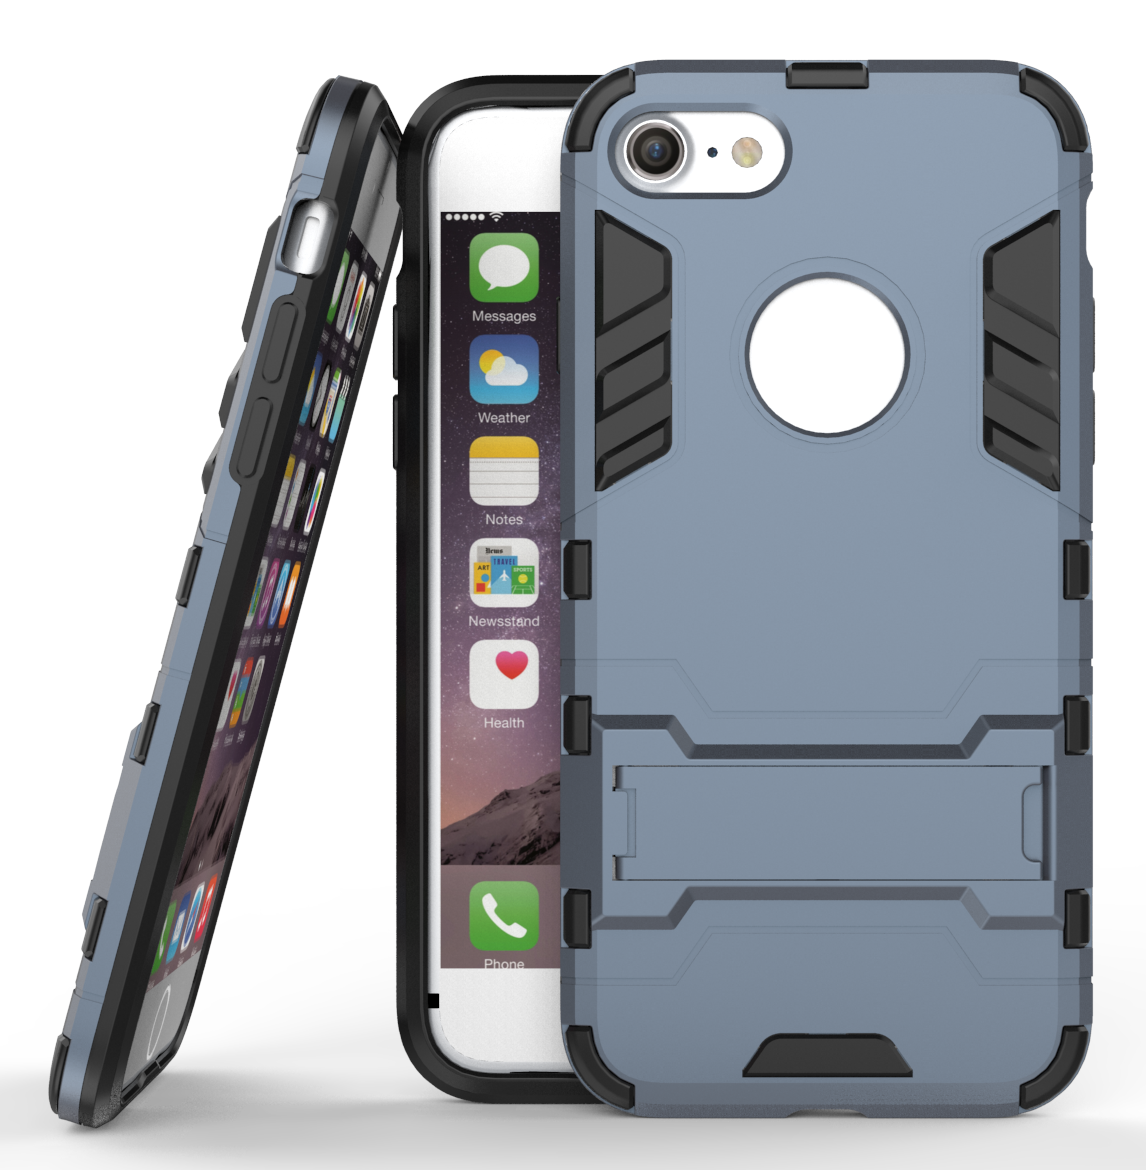 Lim armor shockproof kickstand protective case for iphone 7 4 7inch navy blue p20160907134449958